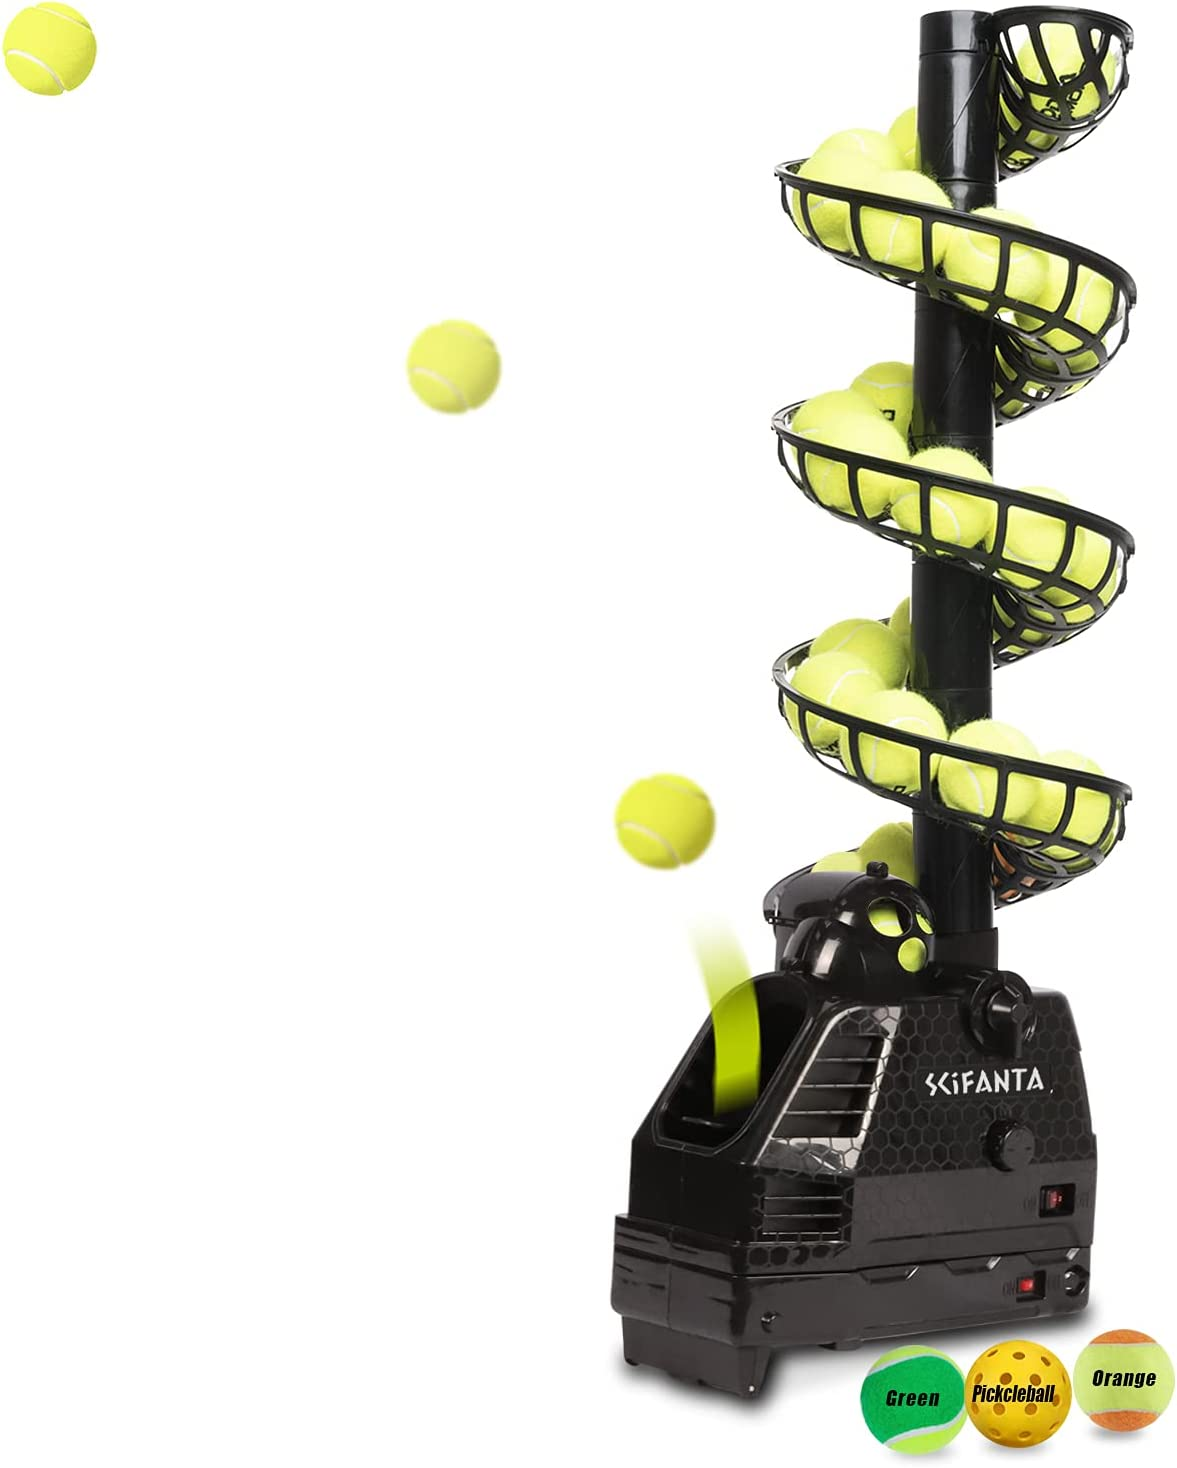 SCIFANTA Adjustable&Portable Tennis Ball Tosser w/Oscillation for Self-Practice|Ball Launcher for Beginners/Kids/Coaches/Home-Court|Accurate&Efficient Feed Machine |AC & Battery Powered